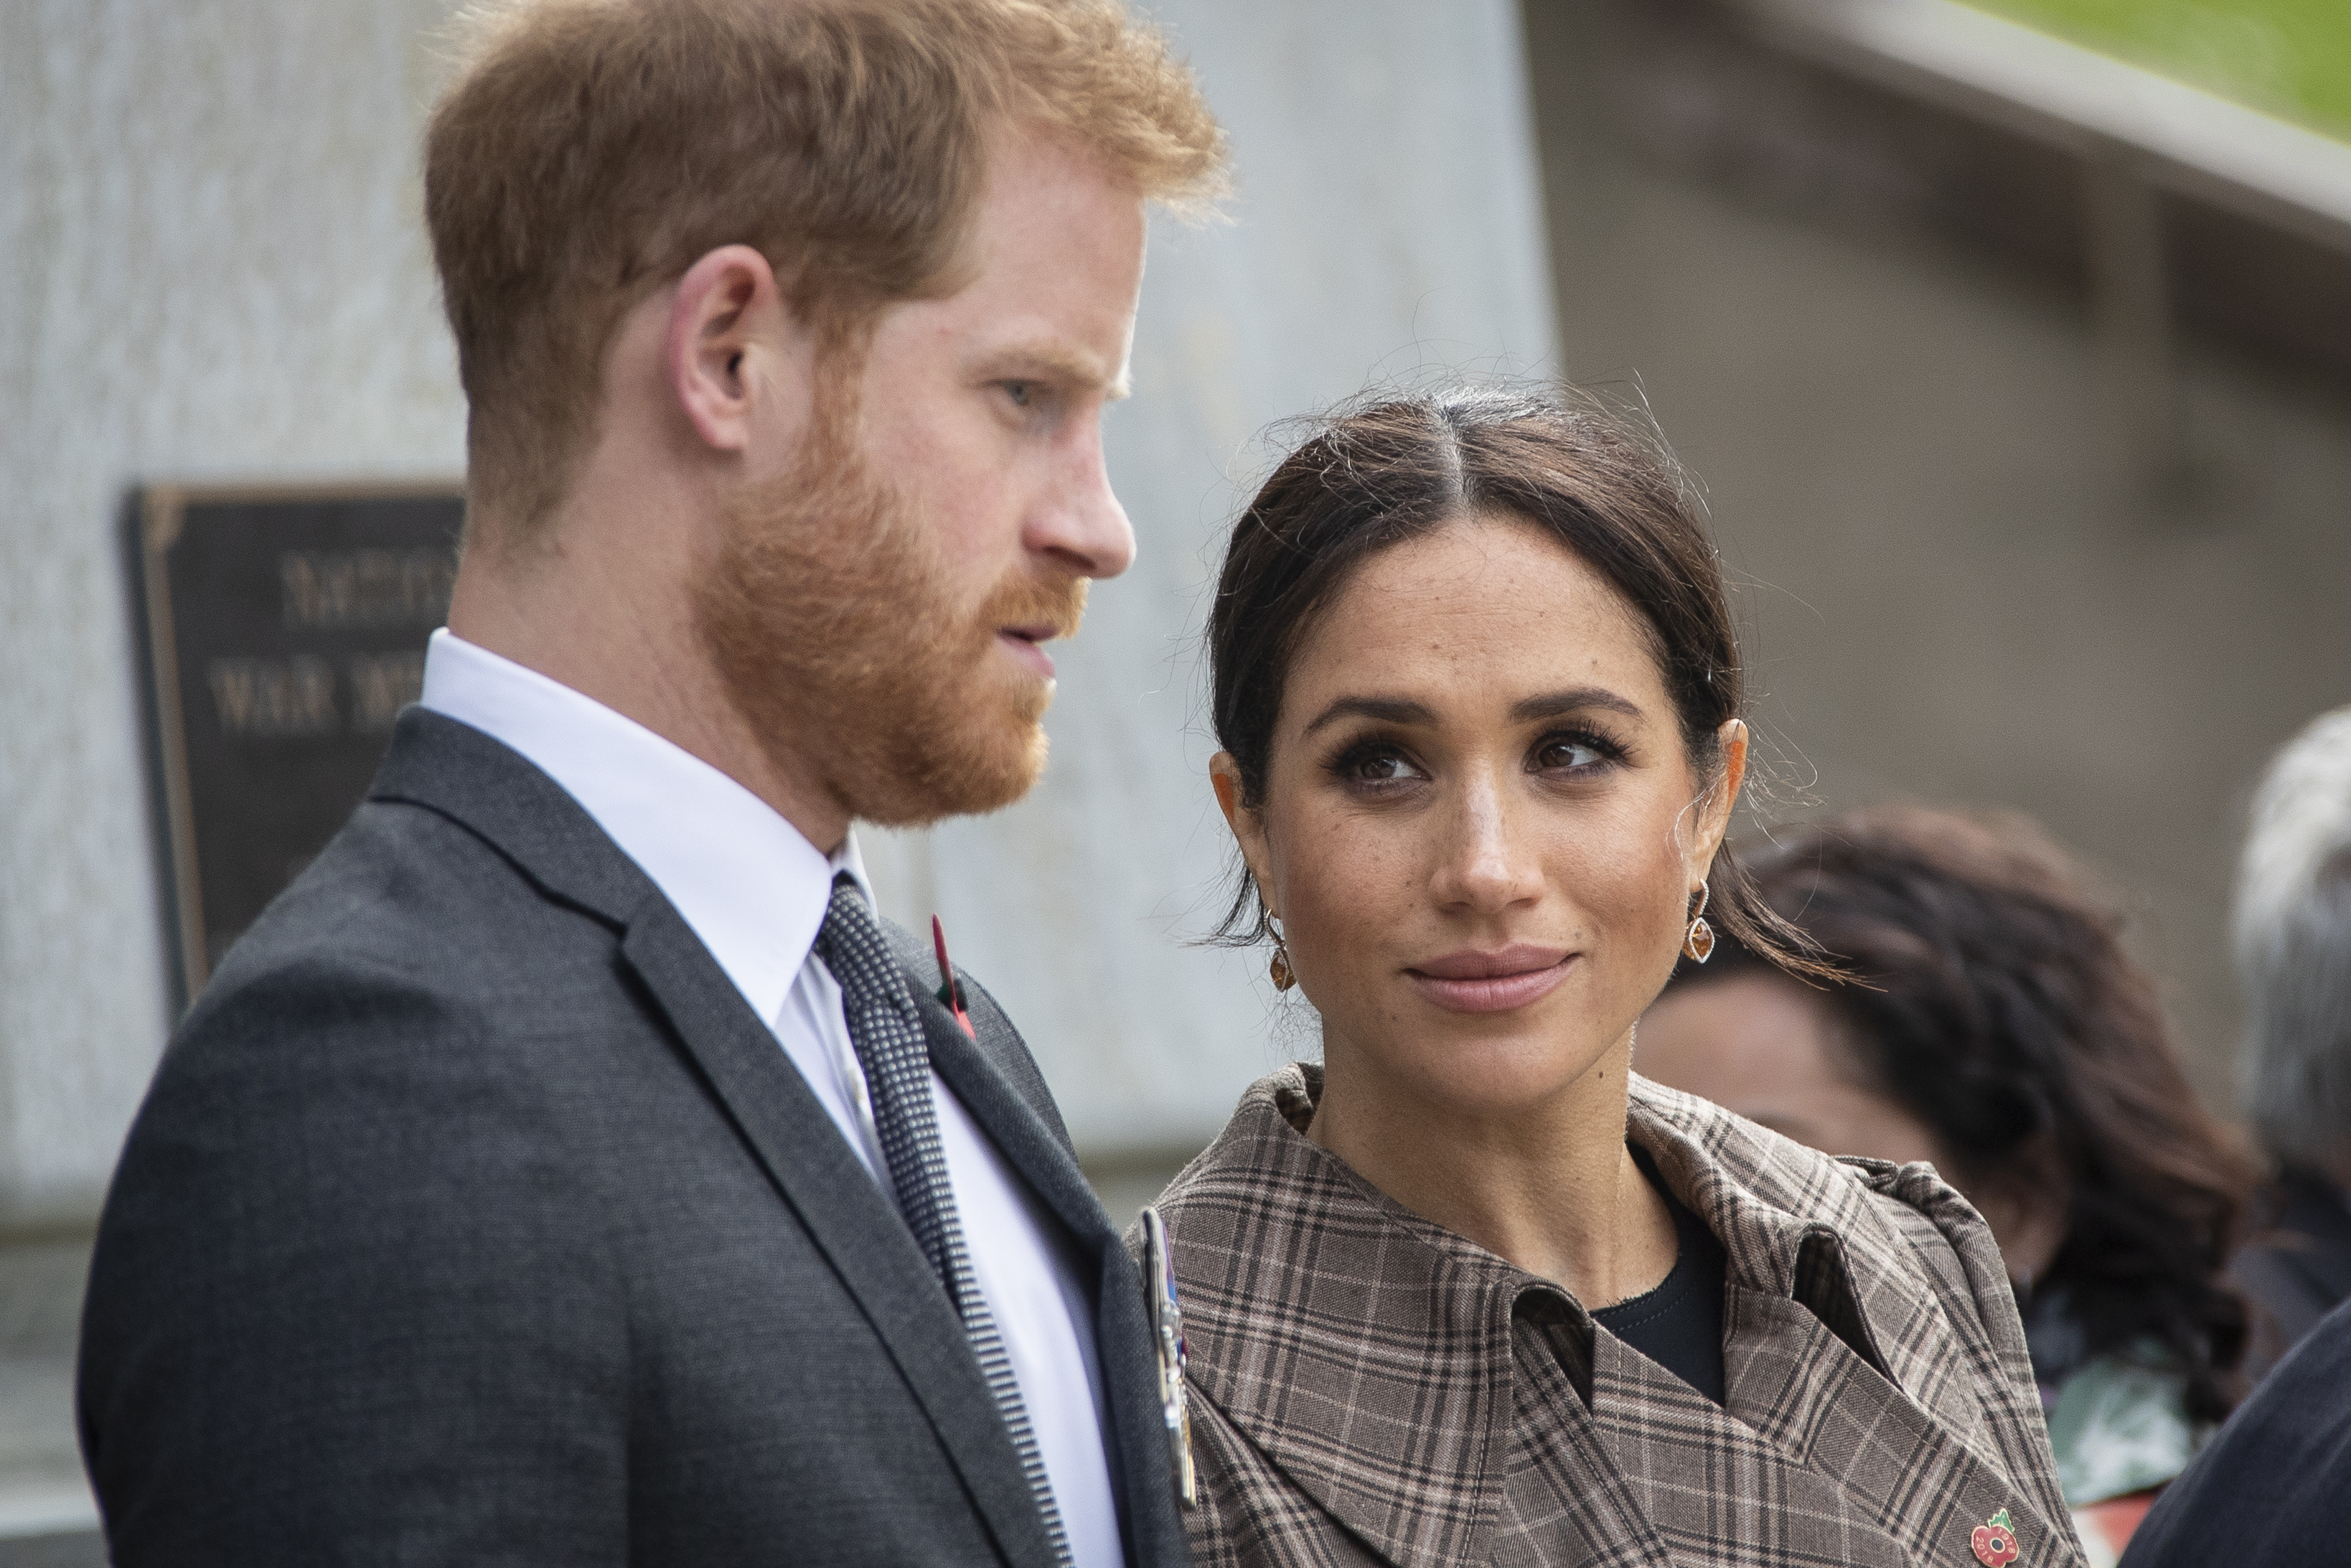 Meghan Markle and Prince Harry might finally get their Buckingham Palace balcony moment